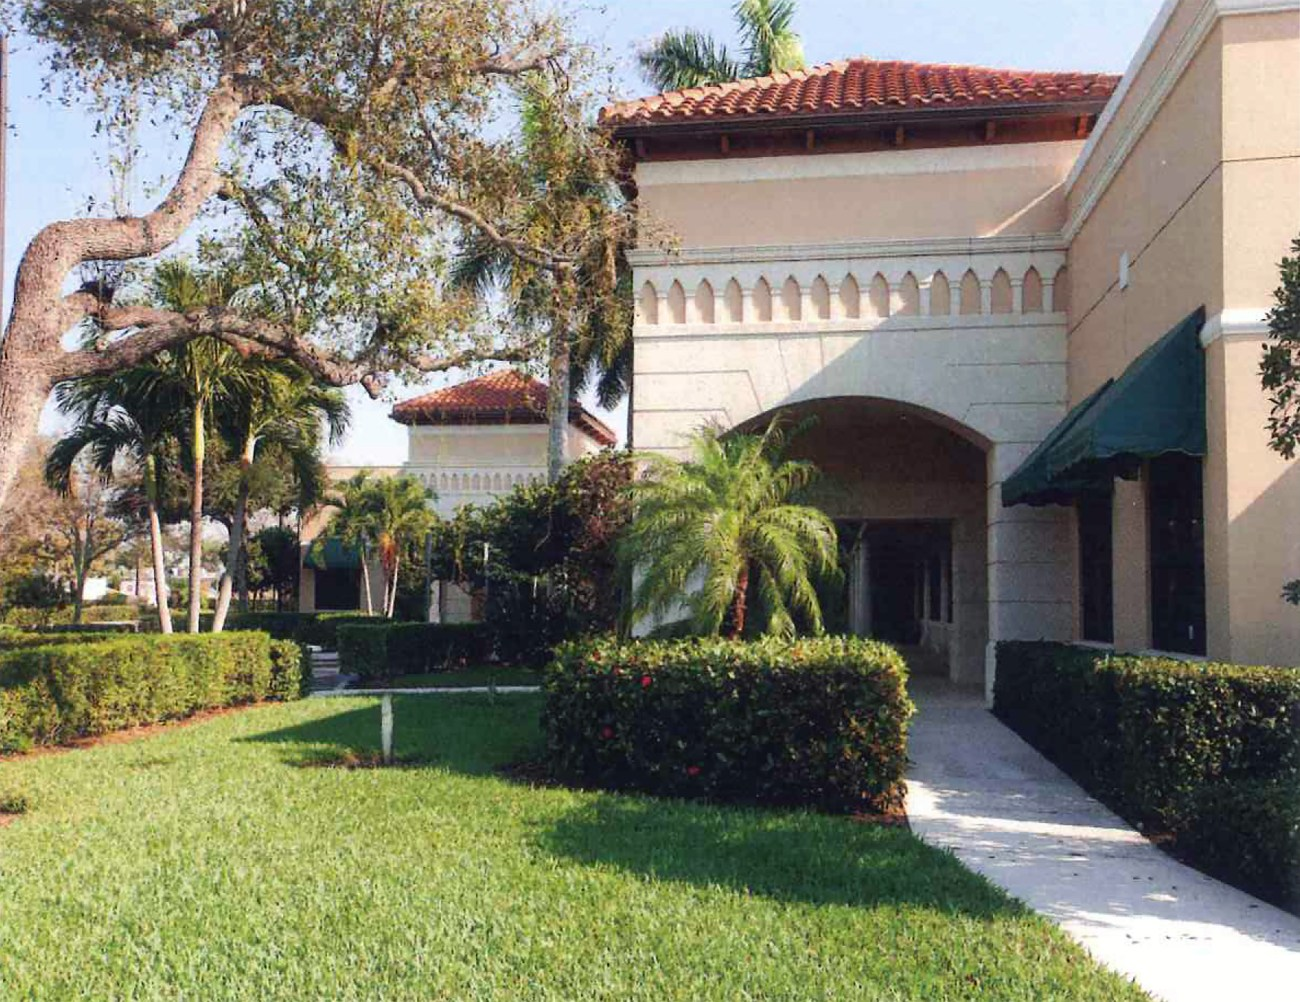 BHI Energy Relocates and Expands in West Palm Beach